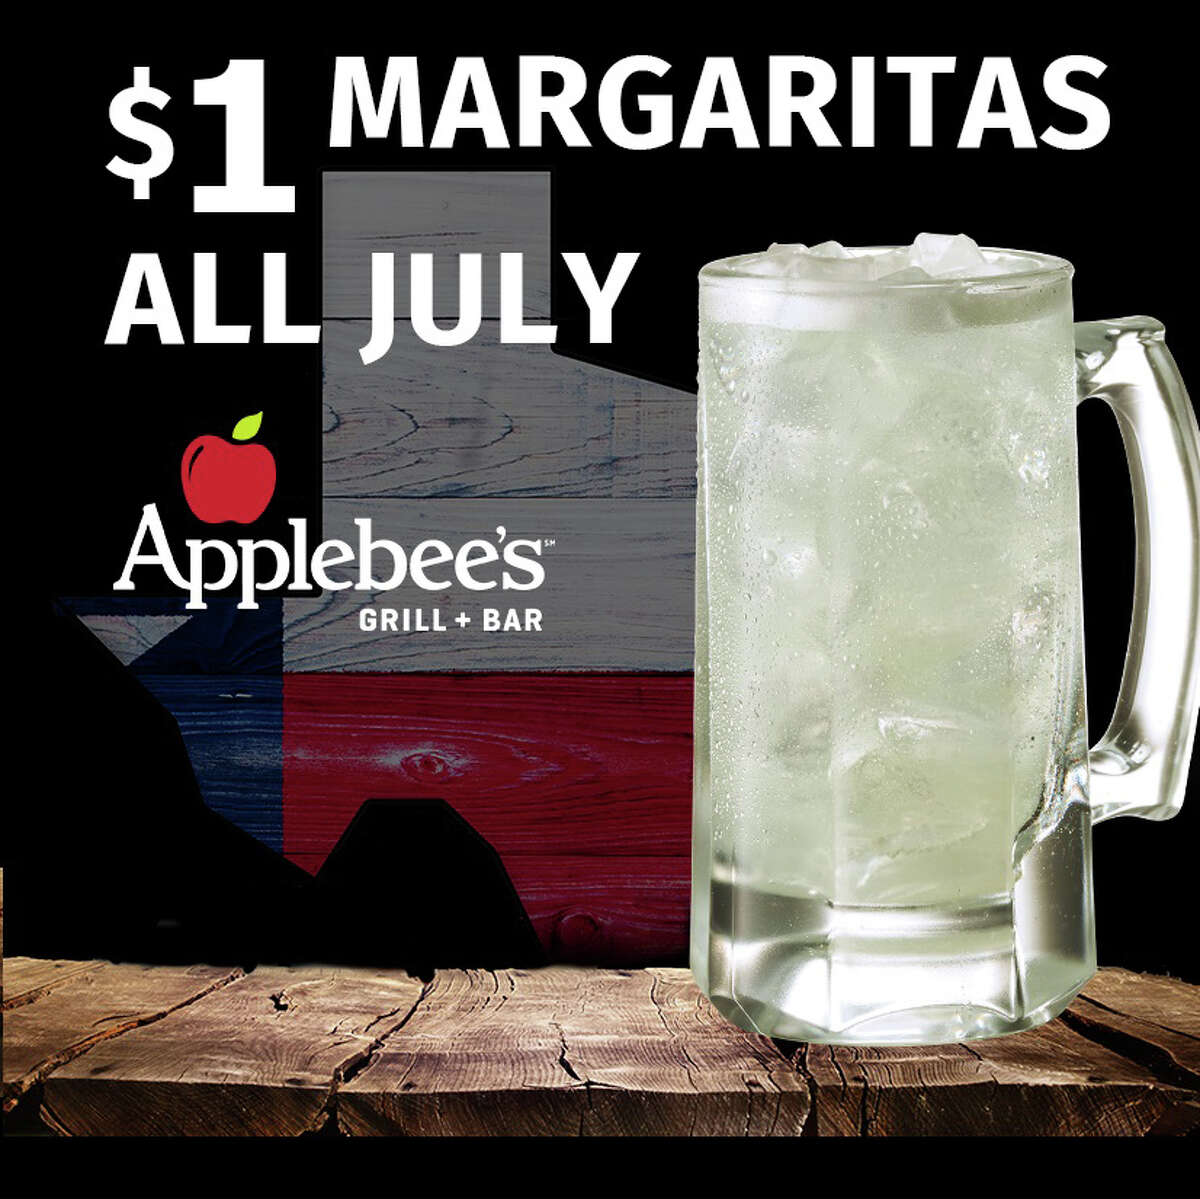 The one-day promotion kicks off a month-long special on two boozy beverages.